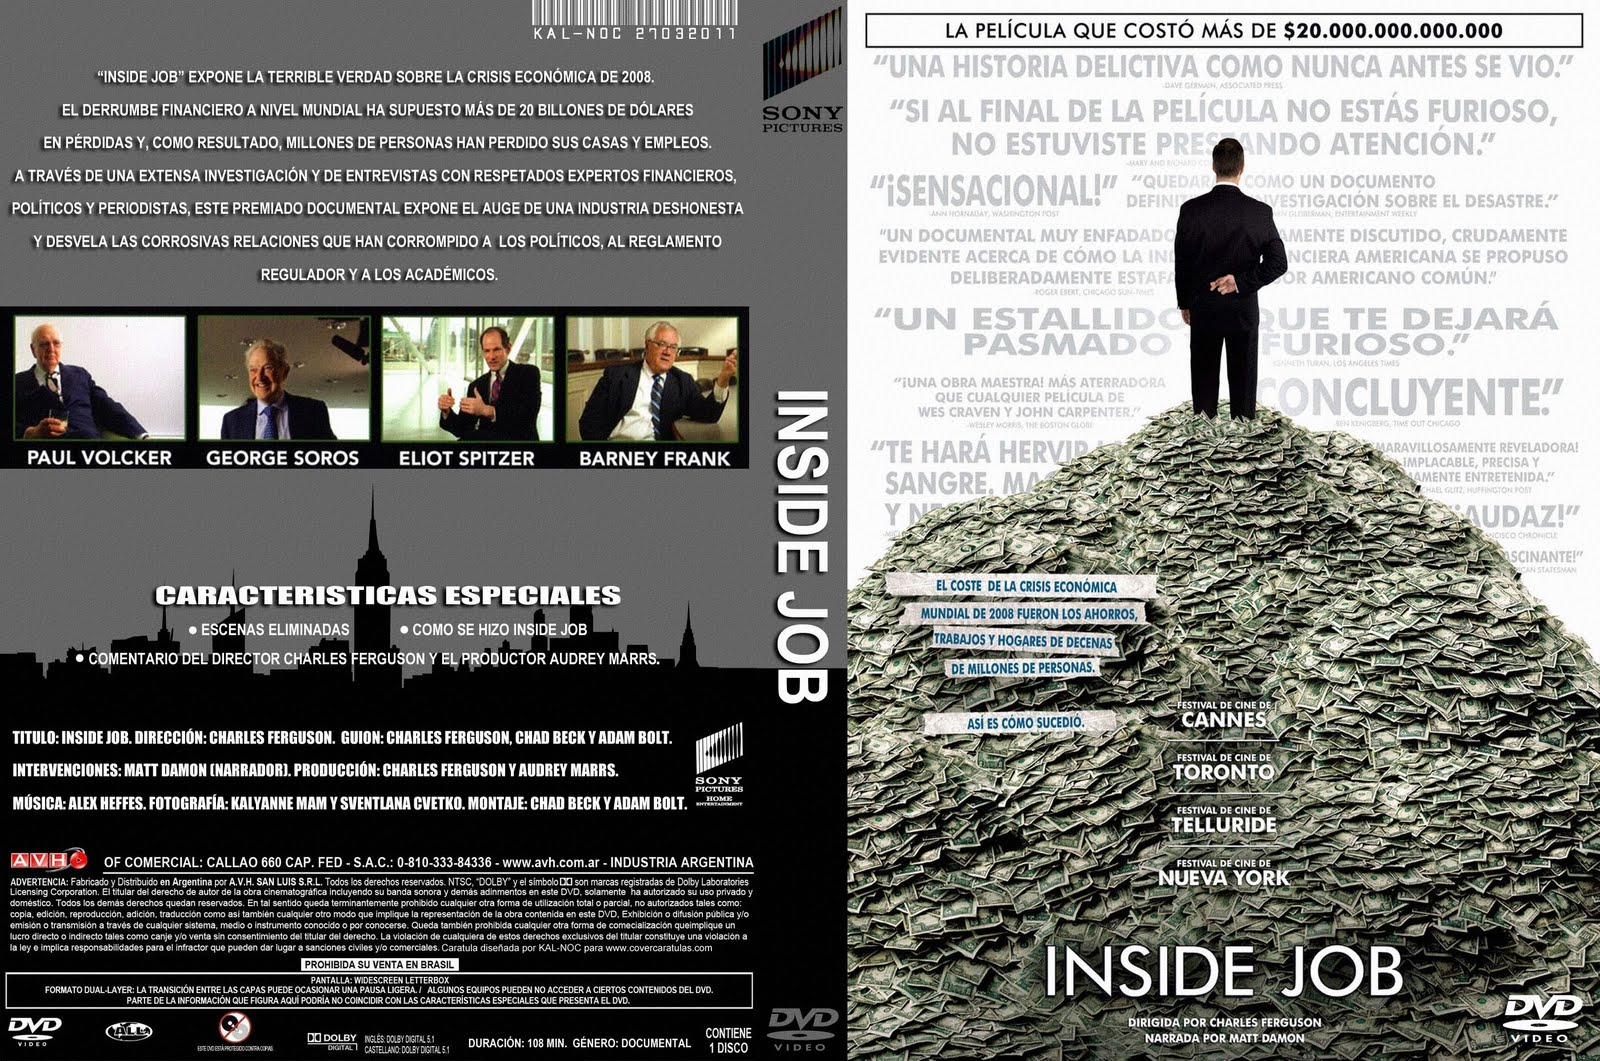 the consequences of unethical decisions in inside job a documentary by charles ferguson Dr dean lorich, a surgeon who volunteered in haiti and exposed clinton foundation corruption on the island, has been found dead in new york.